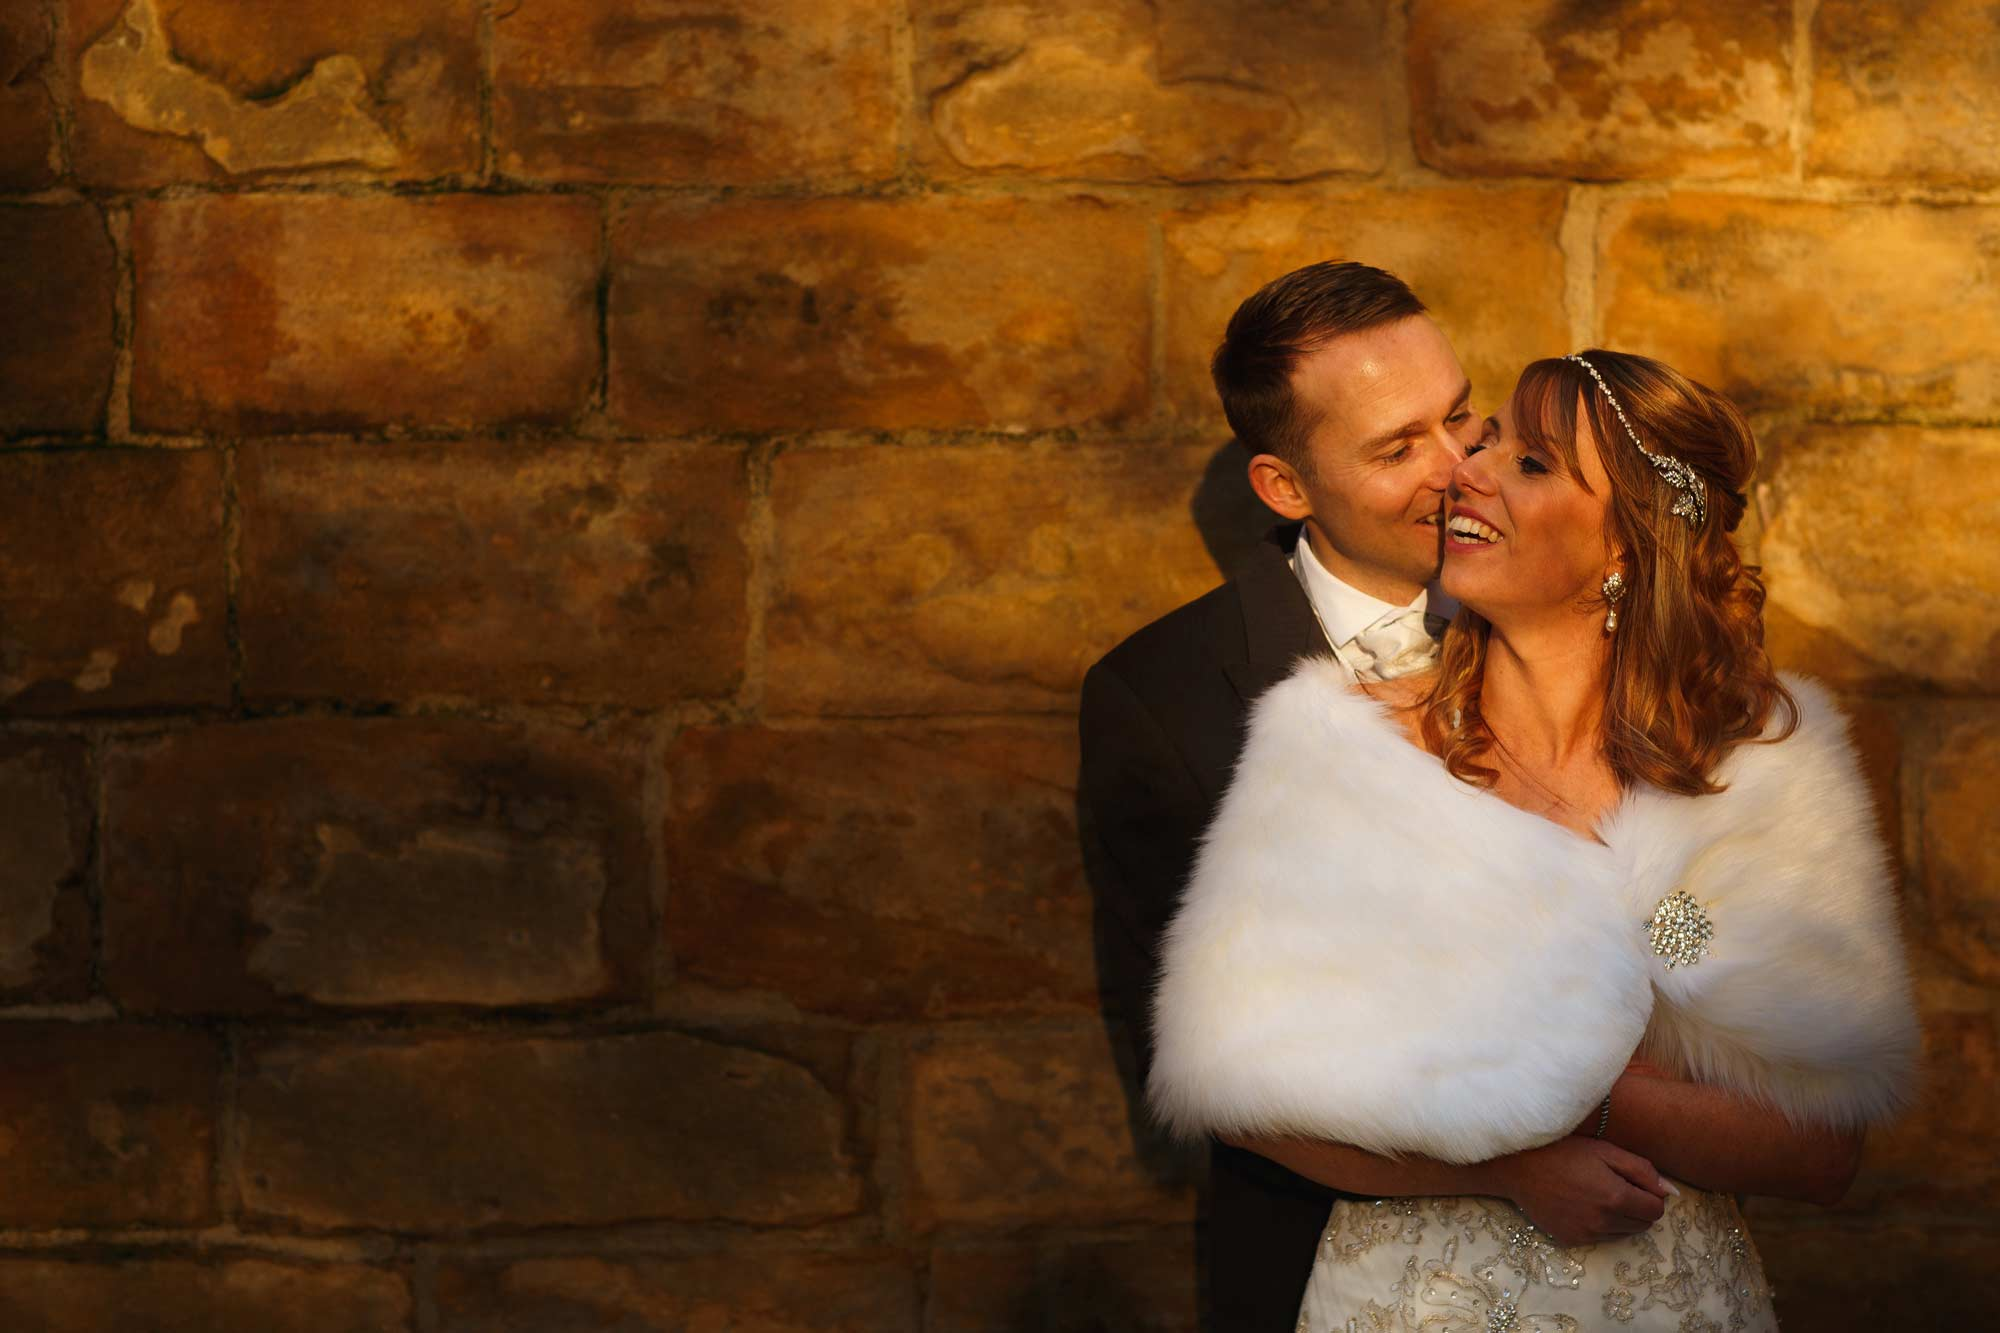 photograph of a bride and groom outside samlesbury hall in the winter sun